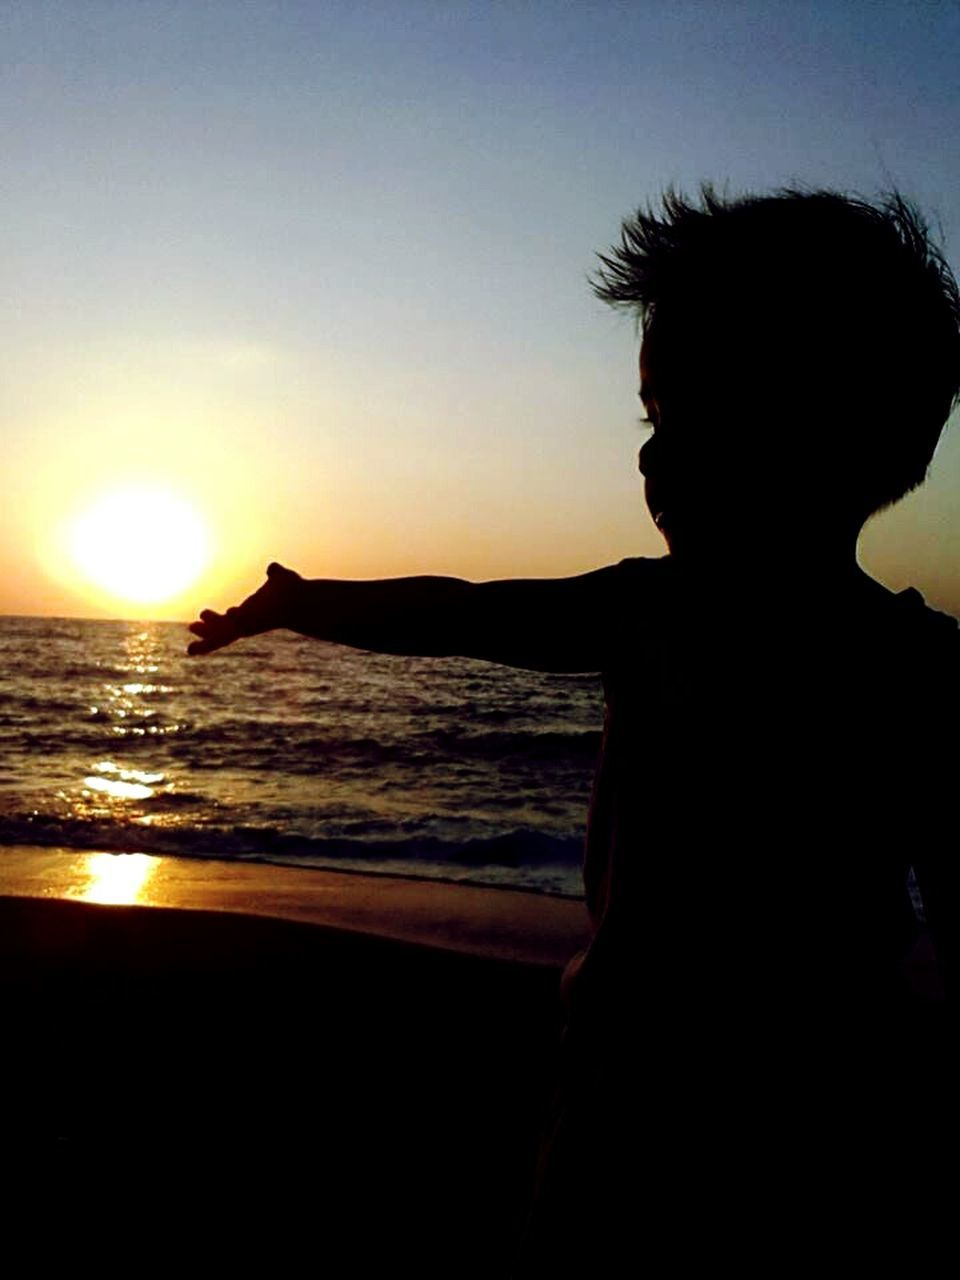 sunset, silhouette, sun, one person, sea, nature, real people, leisure activity, water, outdoors, lifestyles, scenics, beauty in nature, standing, sky, clear sky, day, people